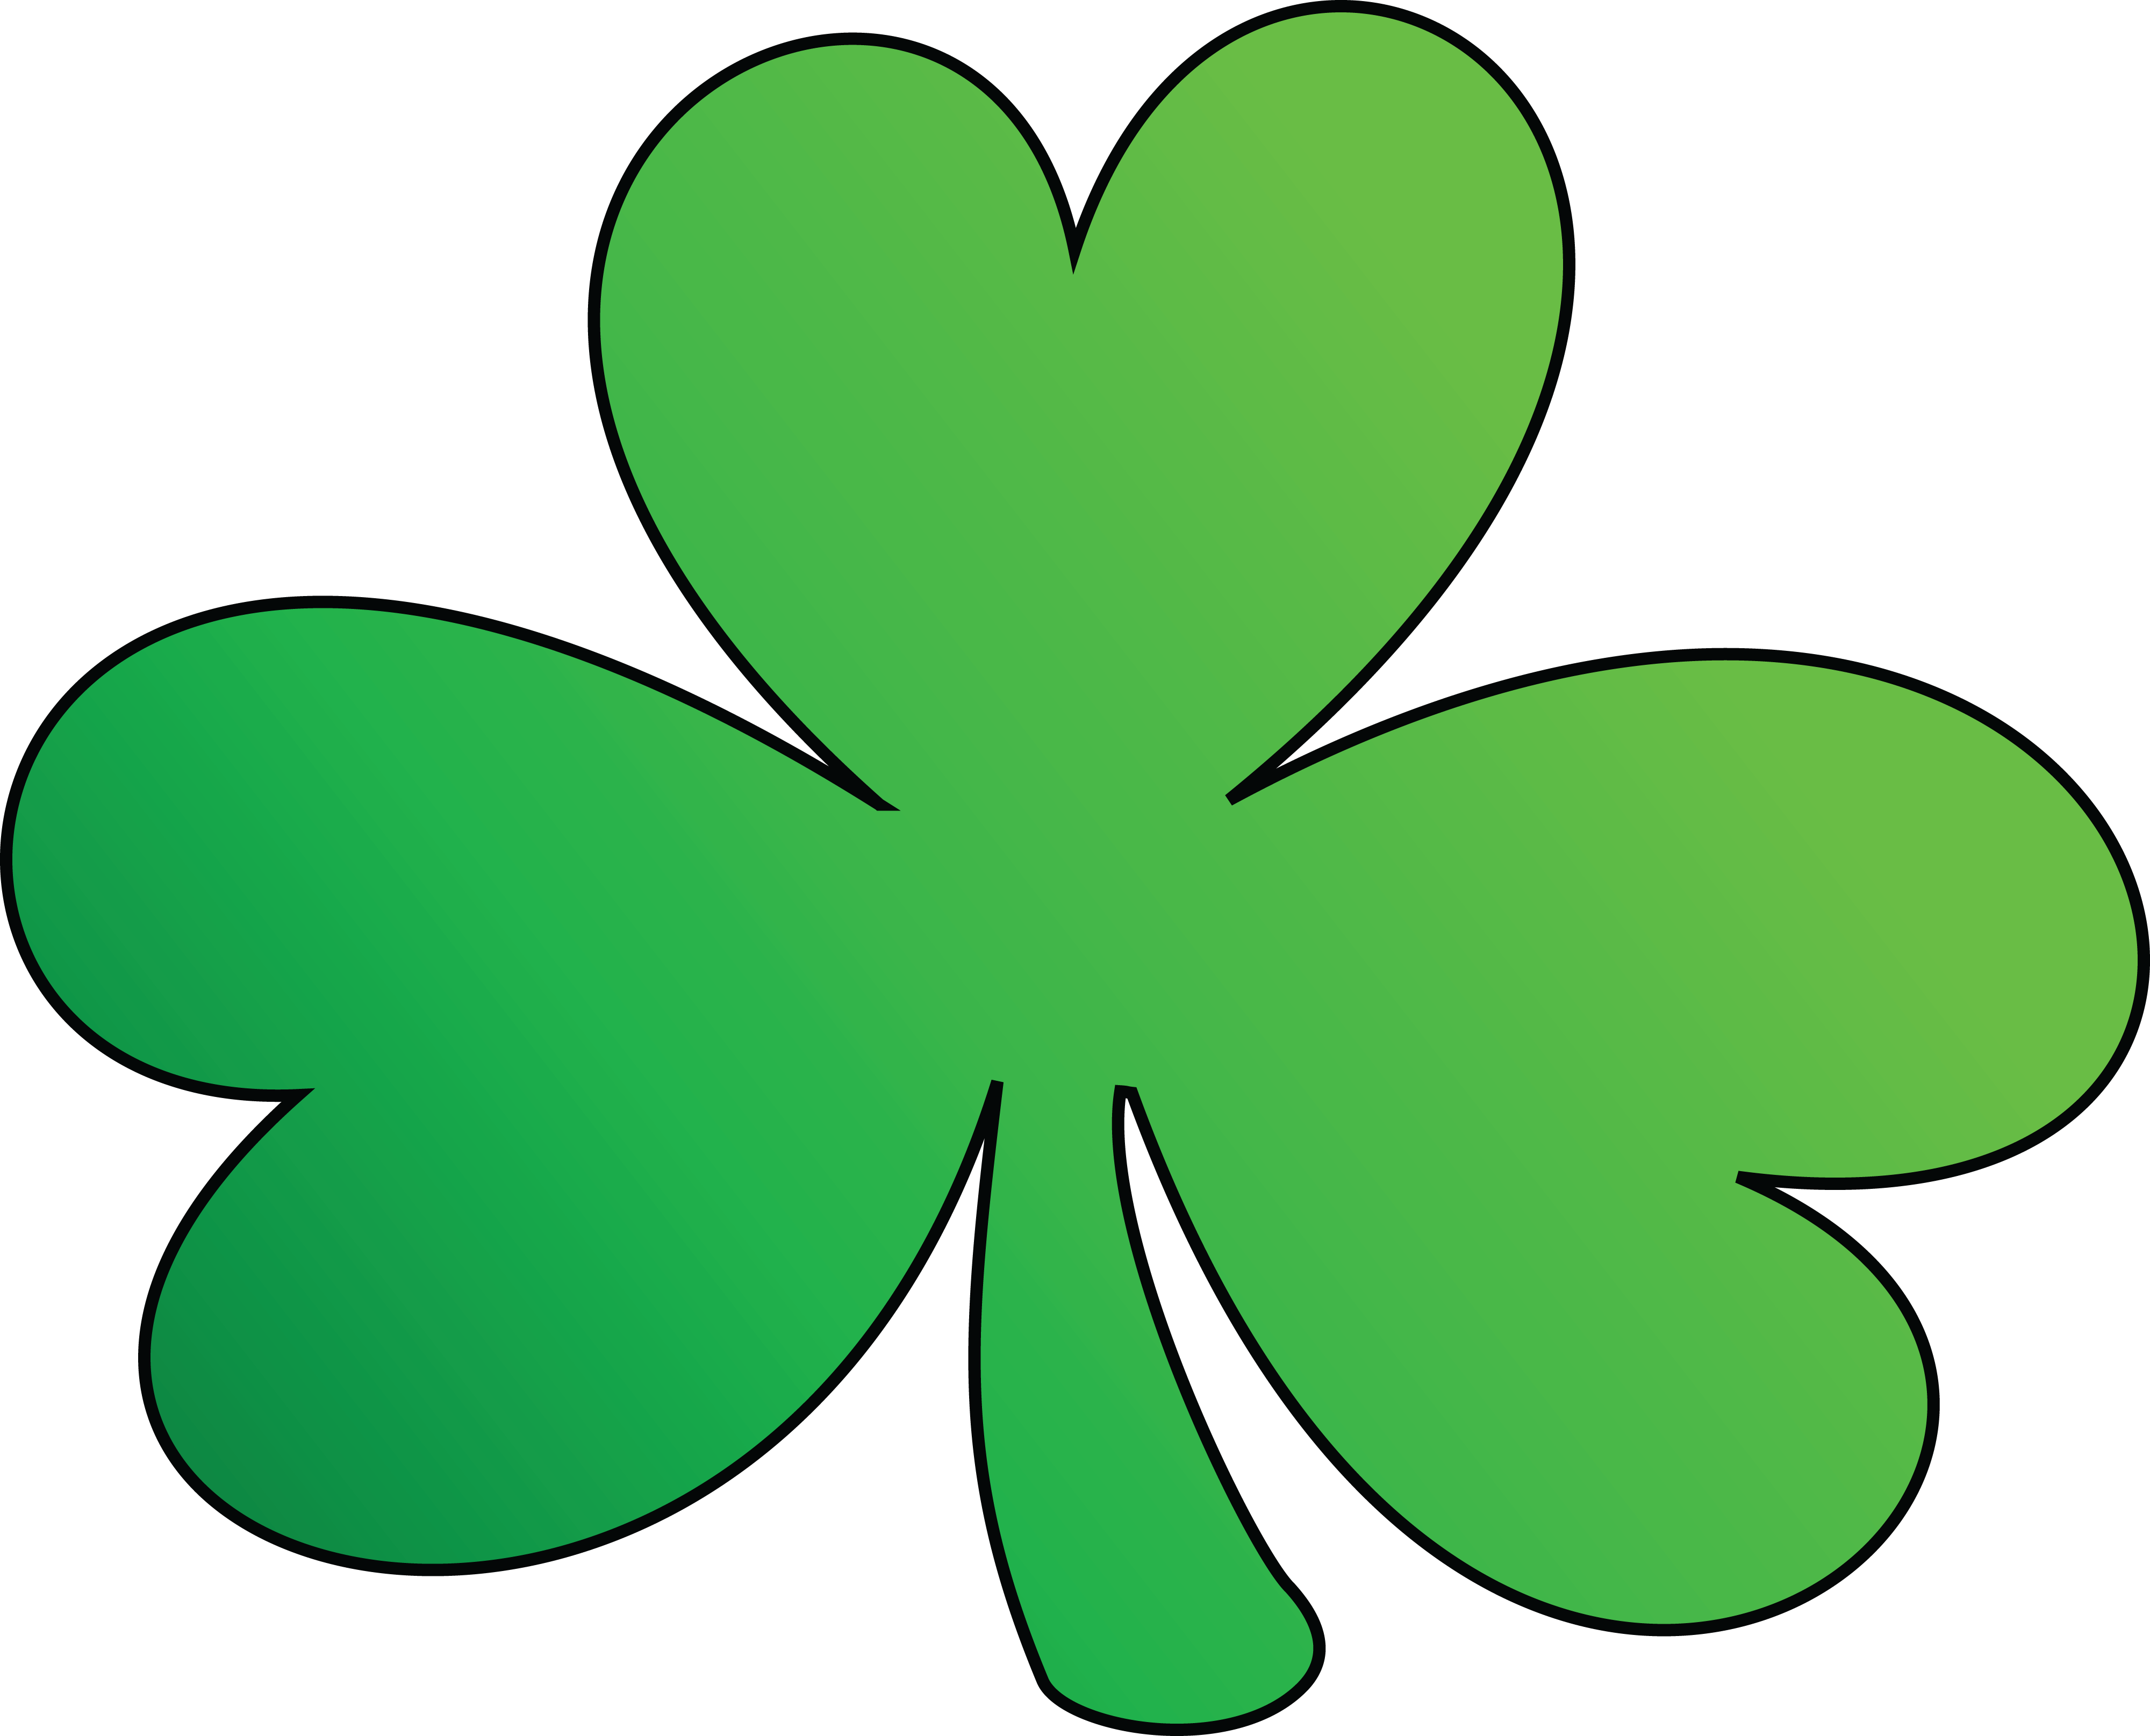 Free Clipart Of A Green Outlined Clover Shamrock, St ...